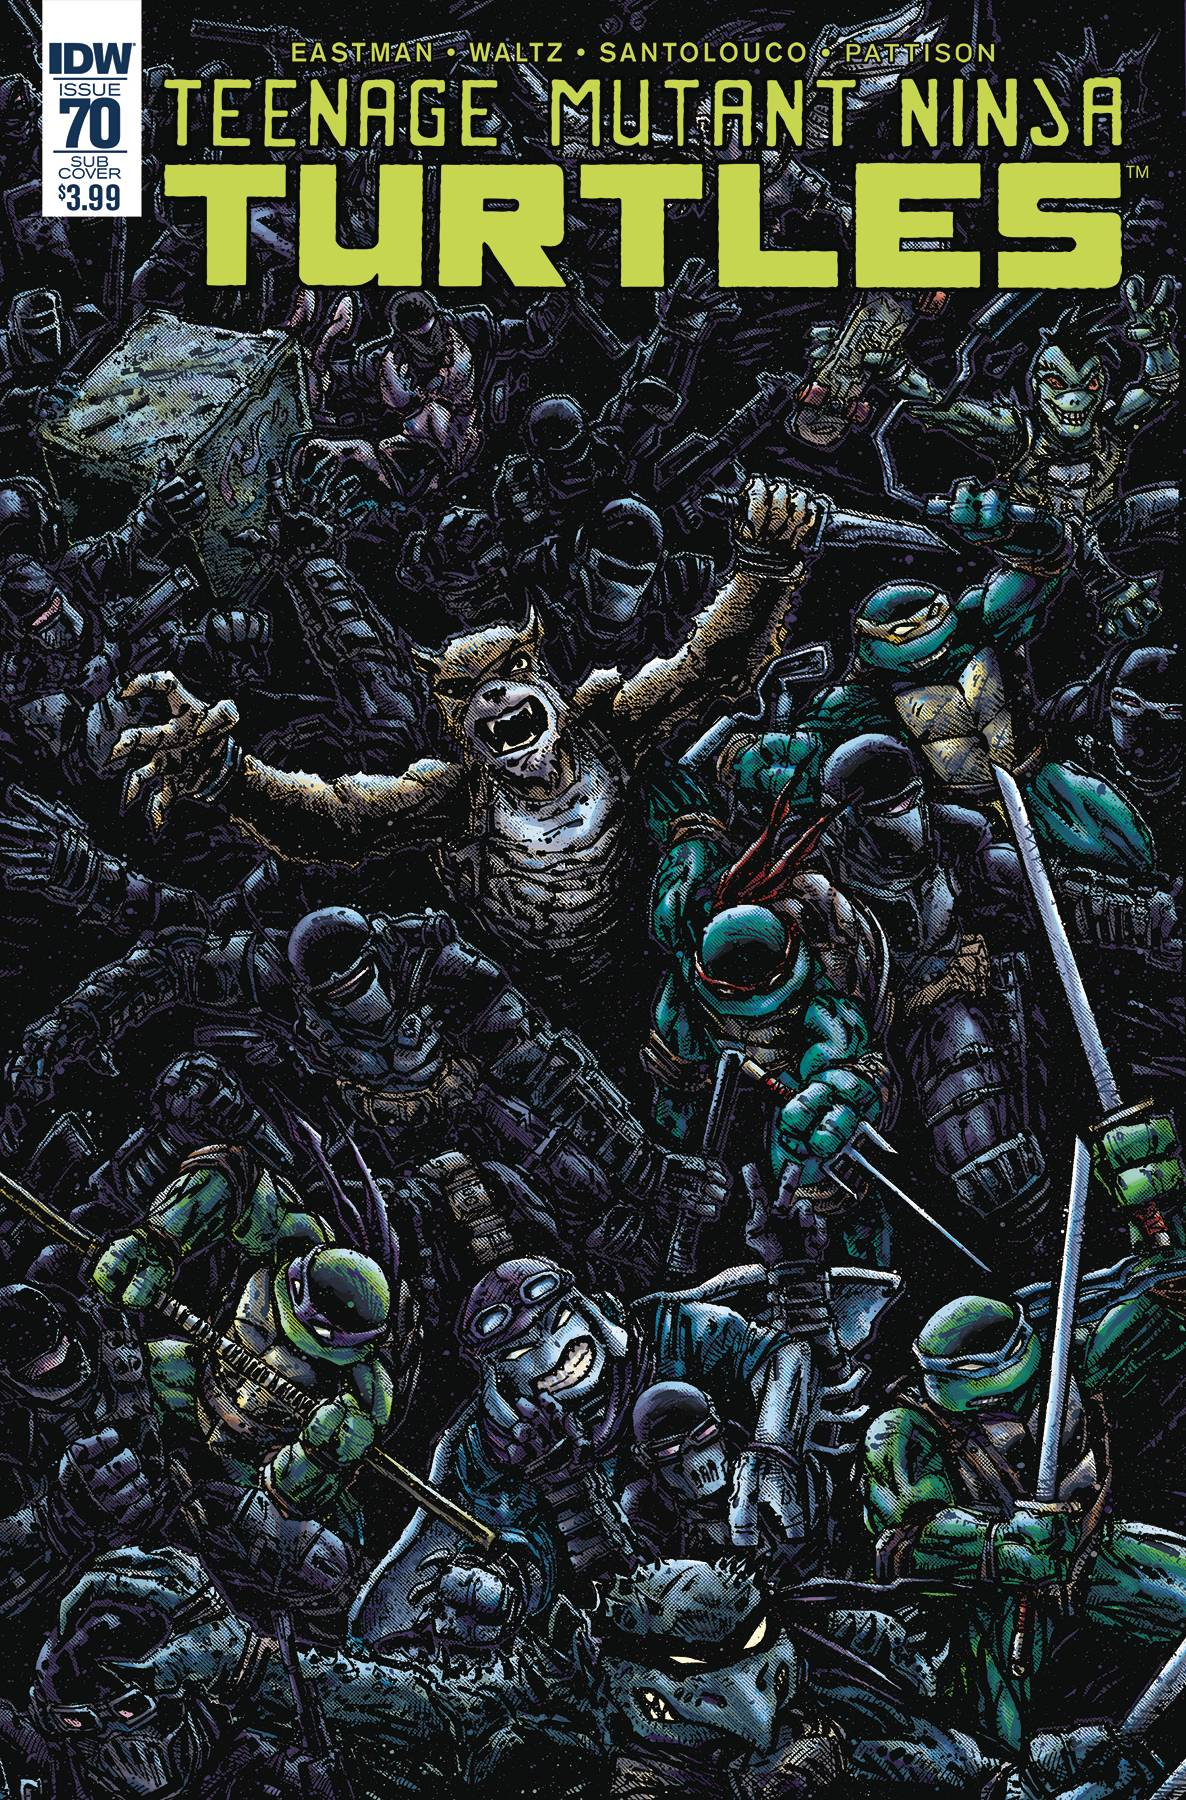 TMNT ONGOING 70 SUBSCRIPTION VAR.jpg